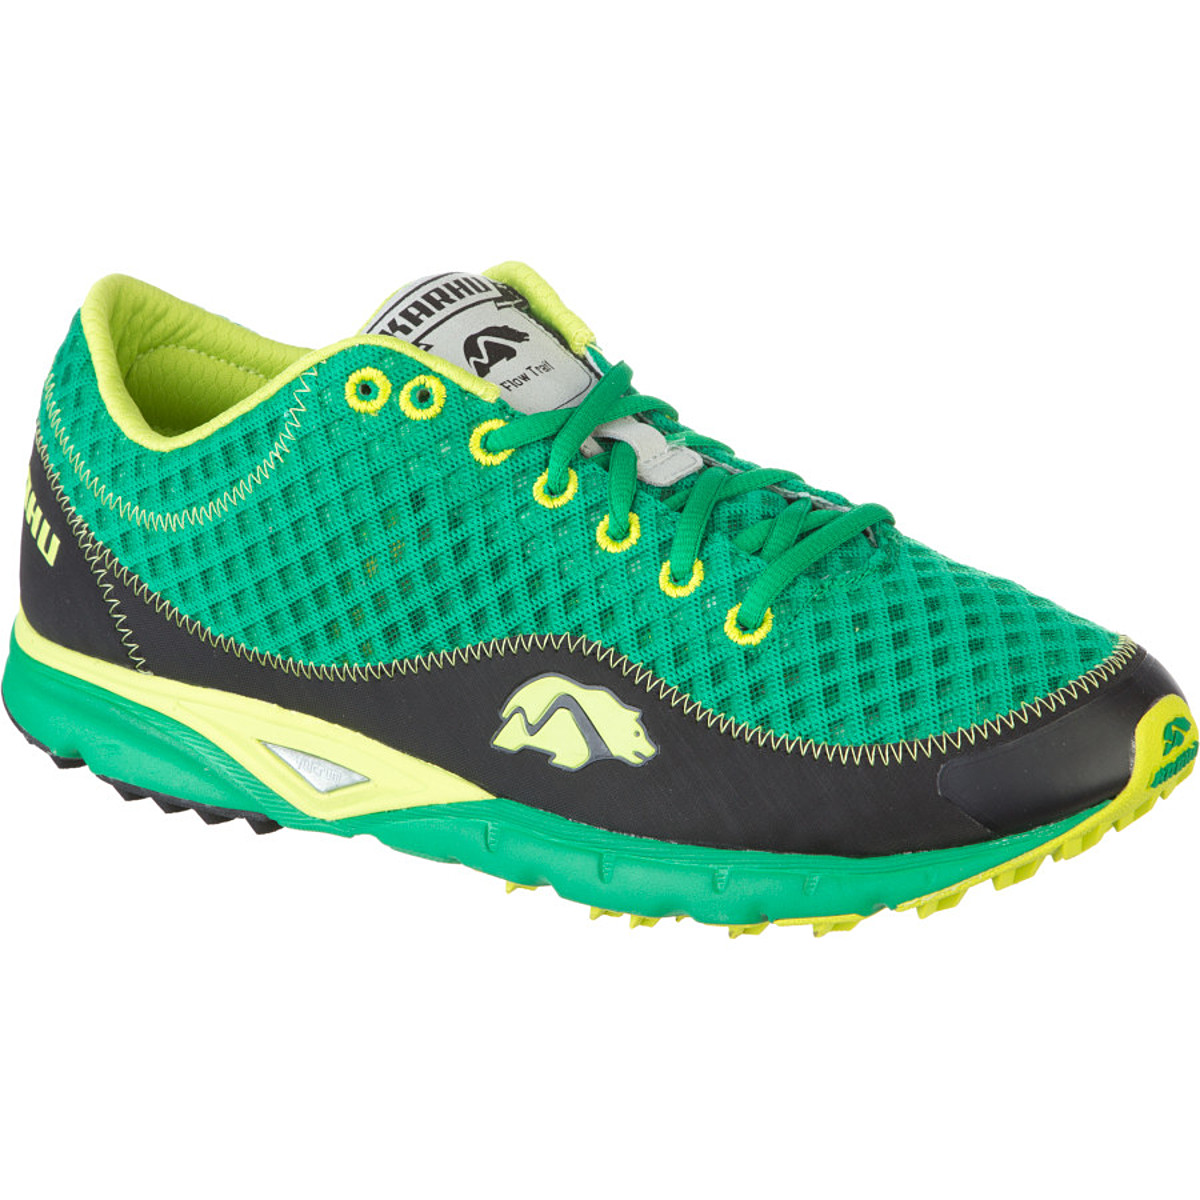 photo of a Karhu trail running shoe